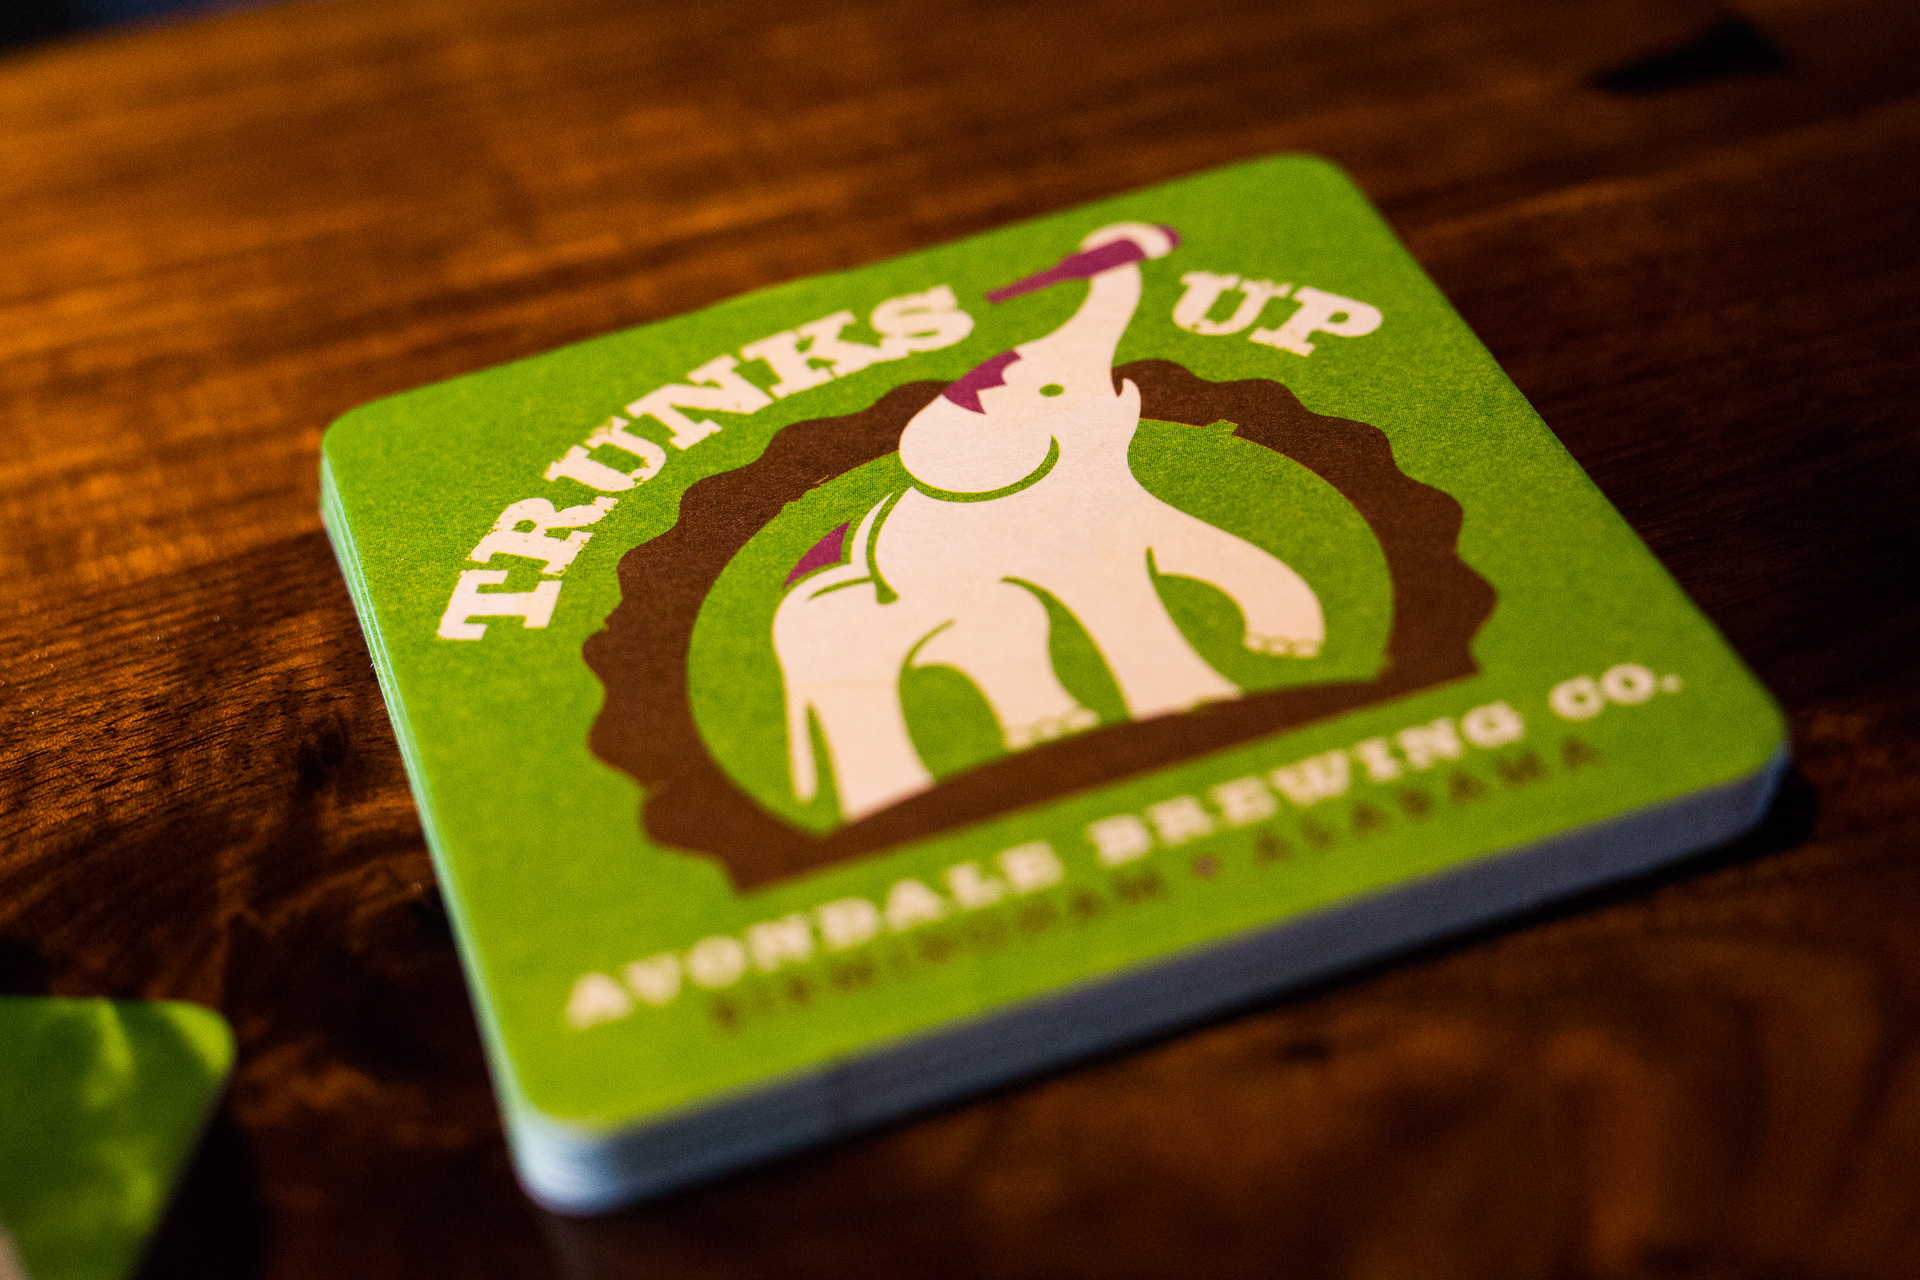 Trunks Up Avondale Brewing